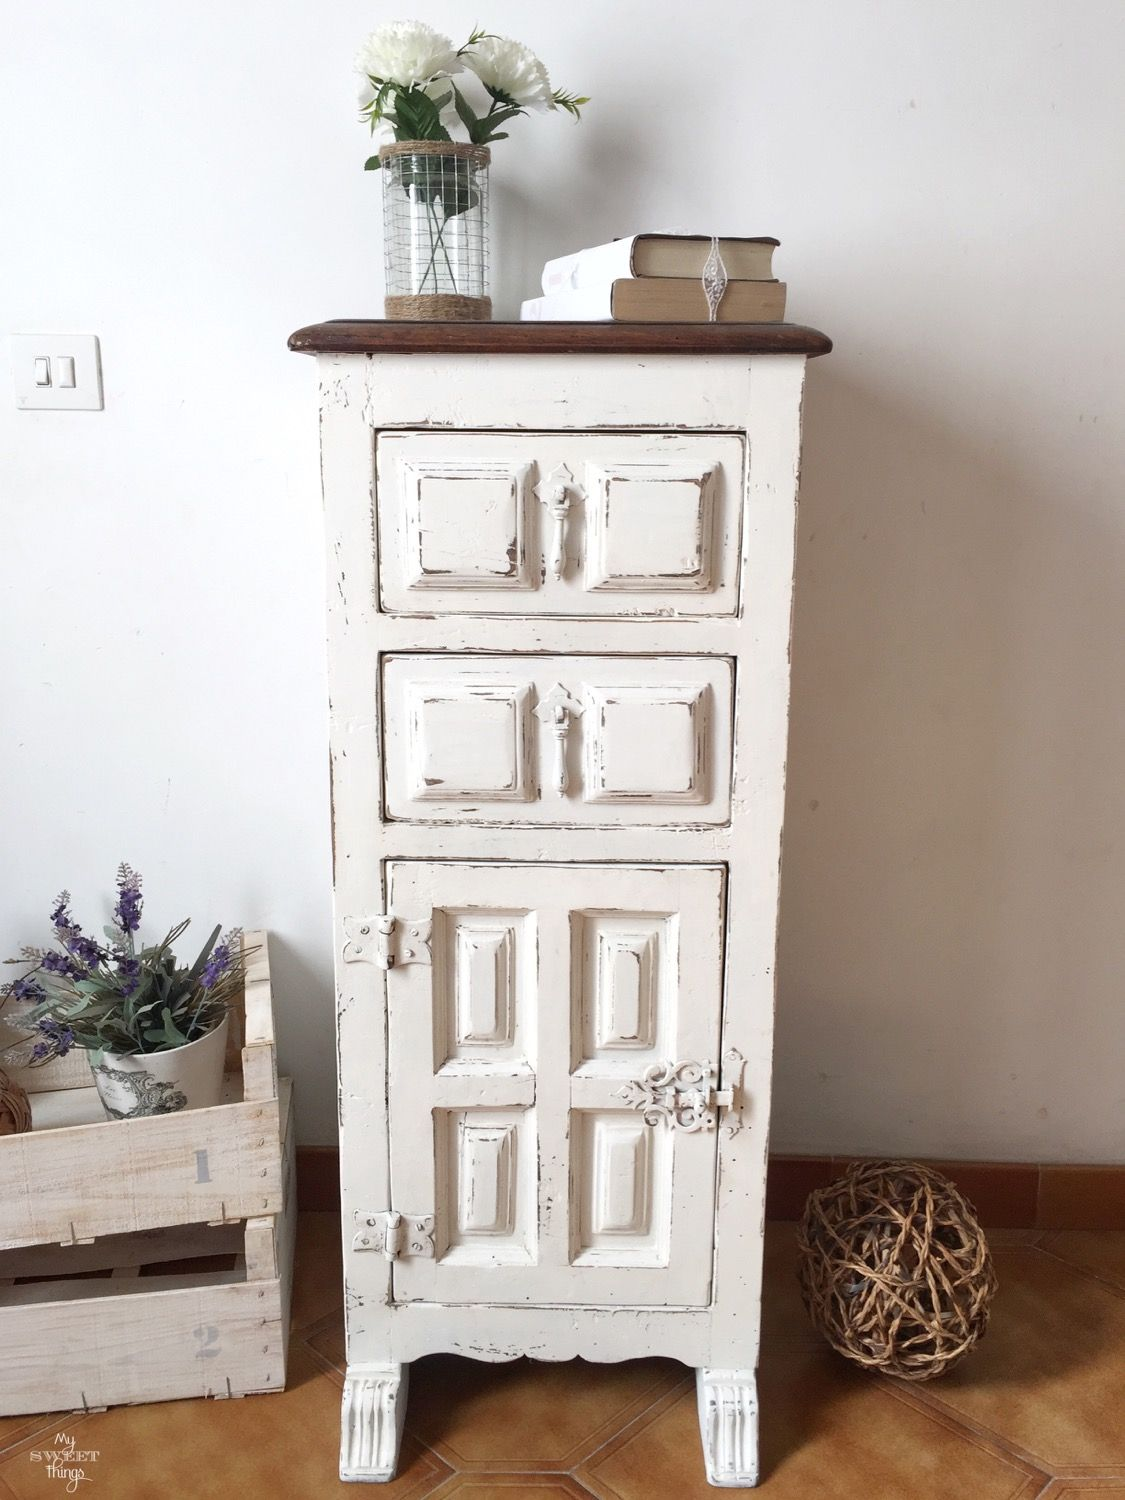 Farmhouse Style Side Table · Painting with DIY chalk paint · Distressed furniture · Via www.sweethings.net